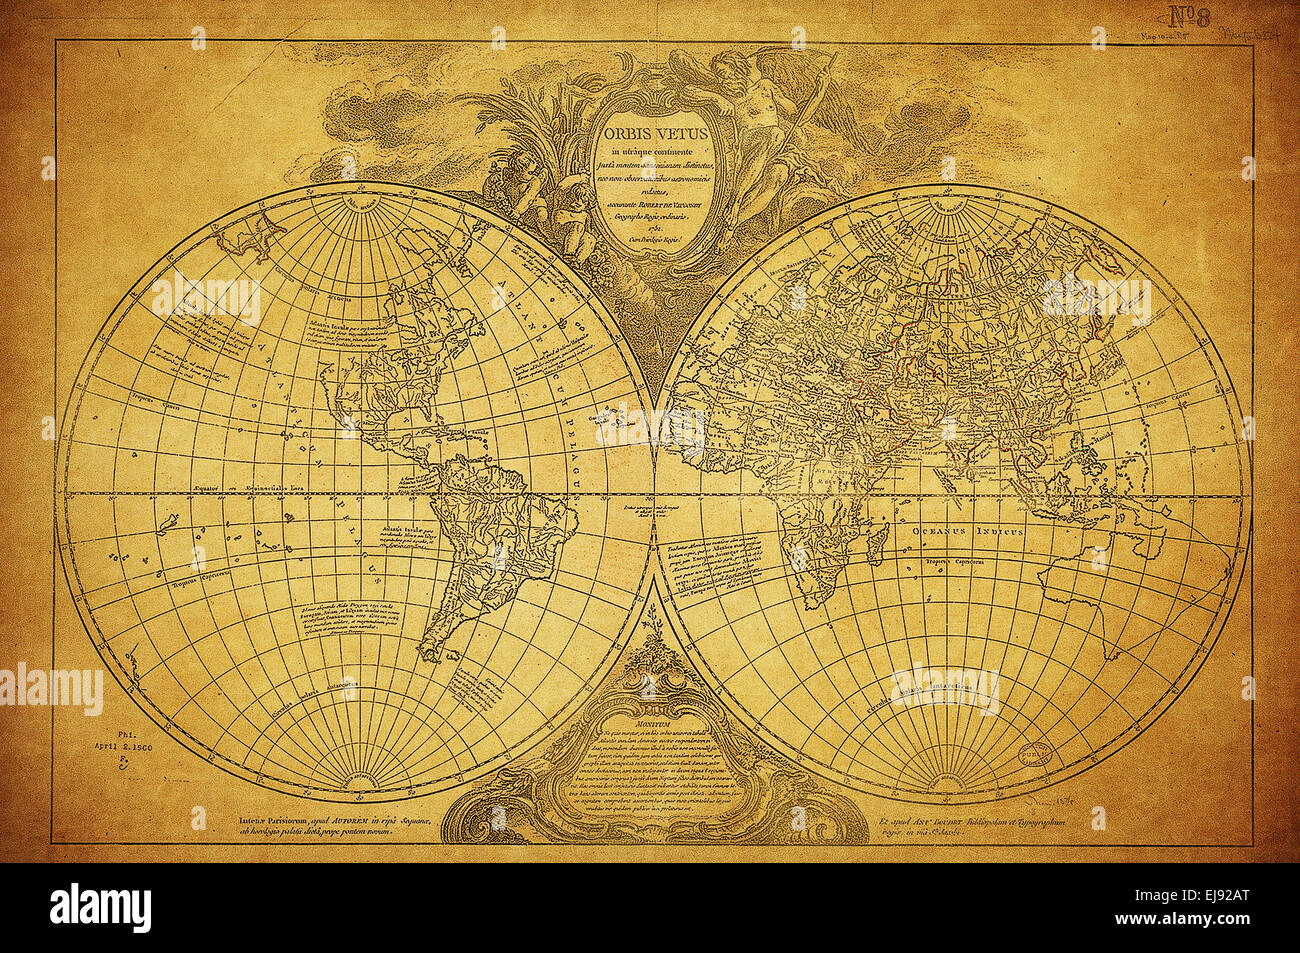 vintage map of the world 1752 - Stock Image